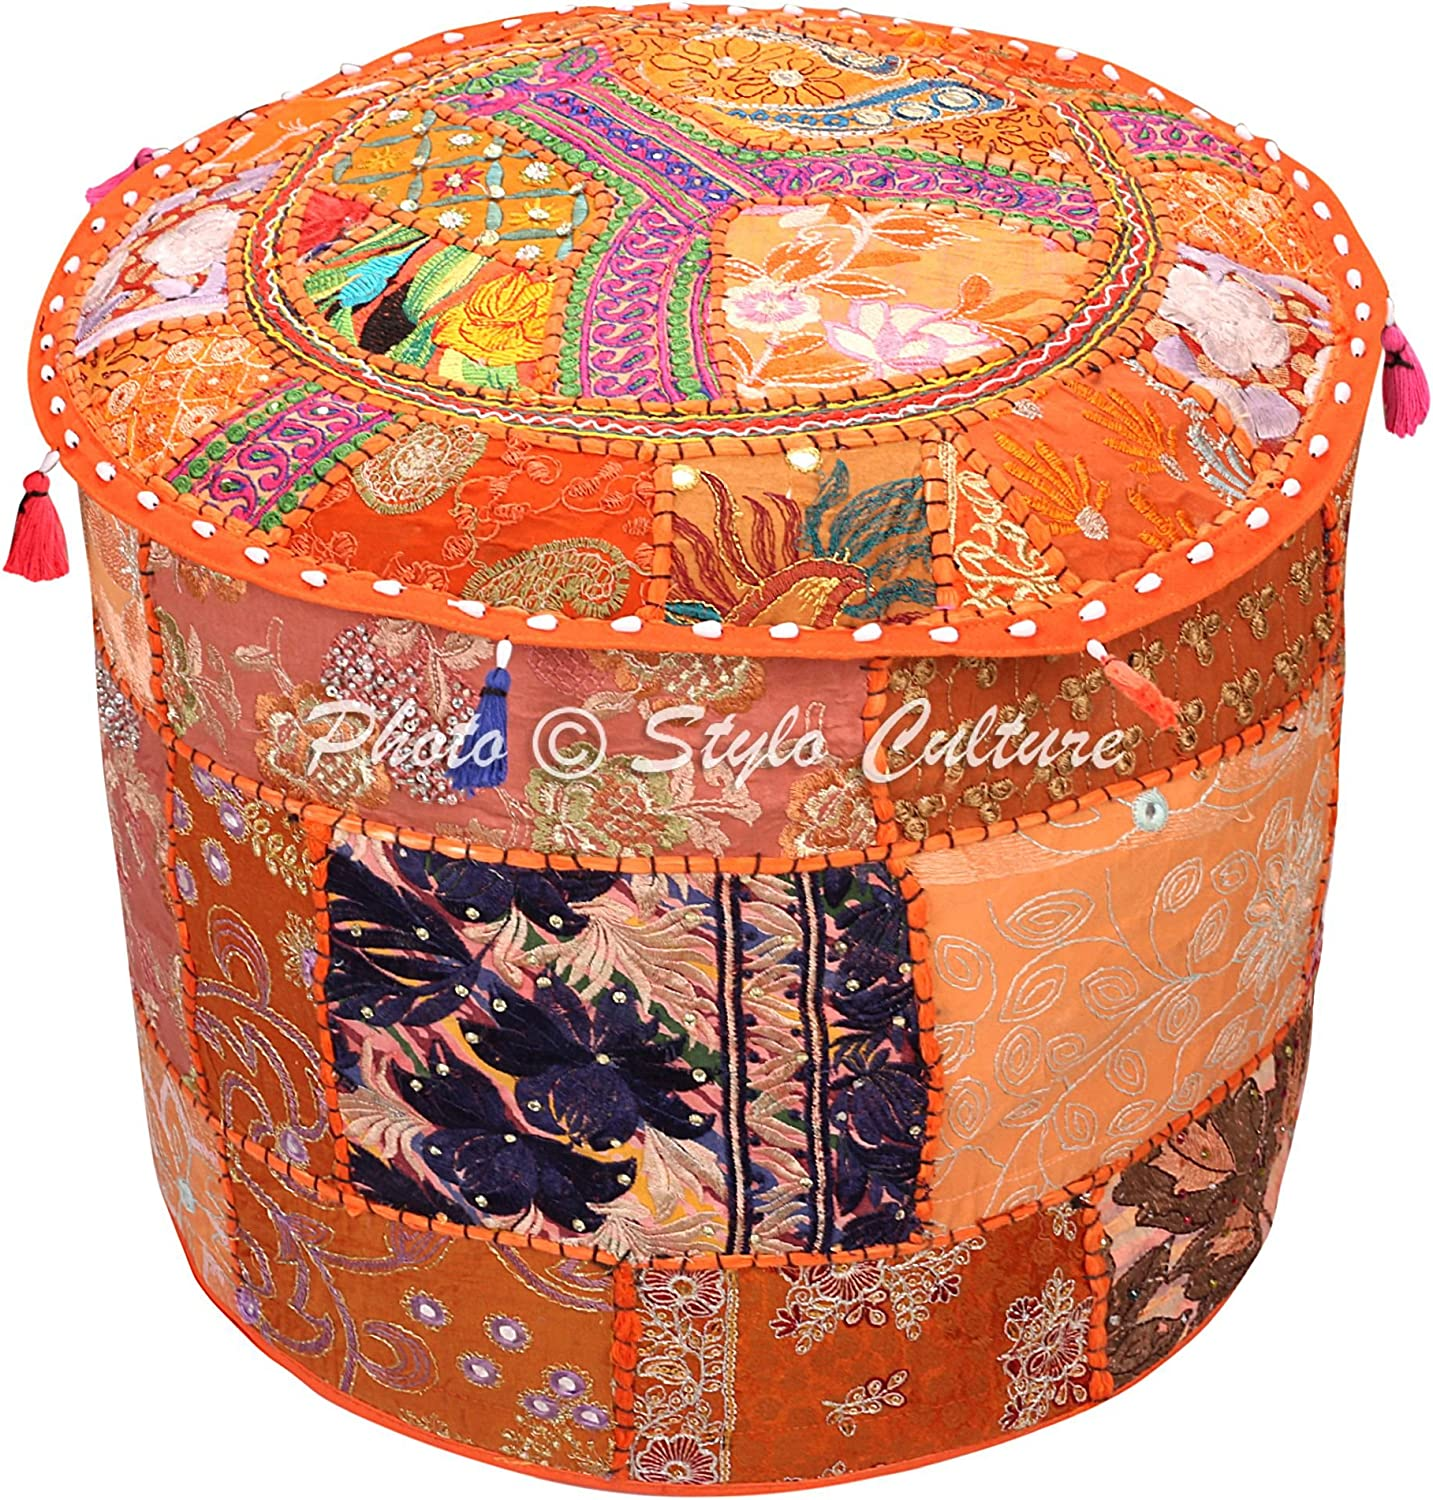 Stylo Culture Indian Floor Pouf Ottoman Cover Round Patchwork Embroidered Pouffe Orange Cotton Floral Traditional Furniture Footstool Seat Puff (16x16x13) Bean Bag Living Room Decor